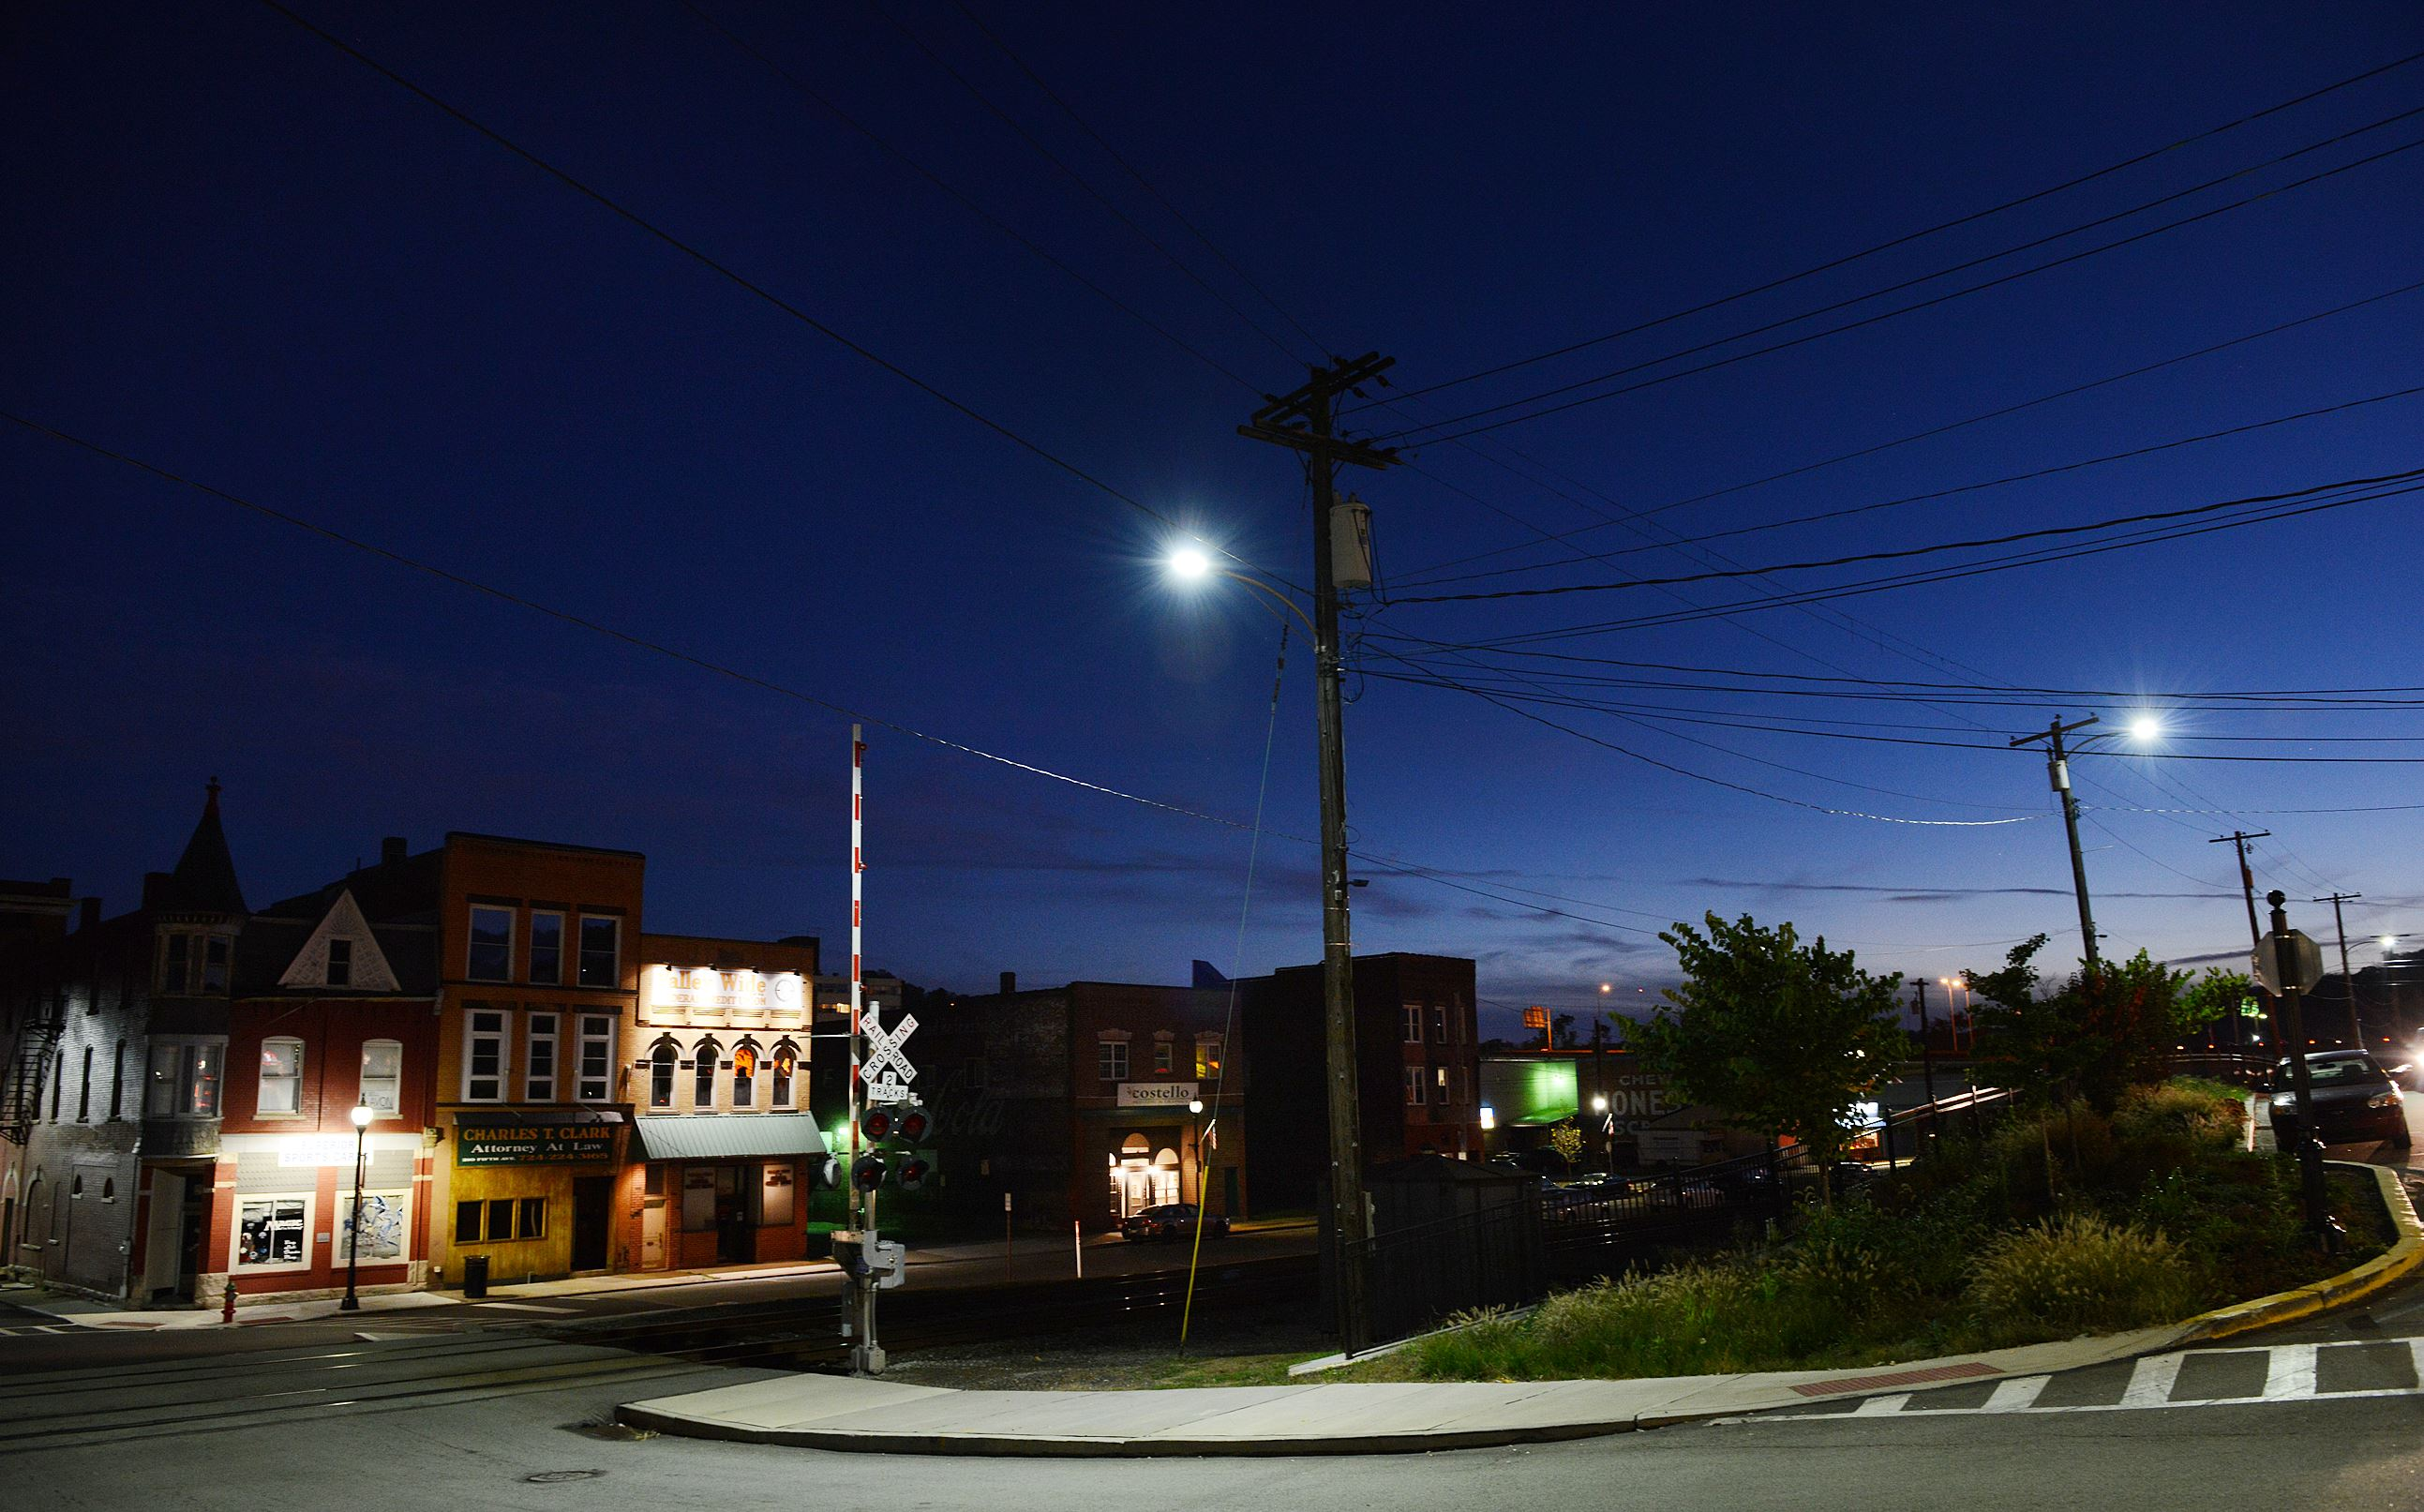 20151025JRLEDlights2-146 Tarentum is one of the Pennsylvania municipalities that has its own power company and would be affected by a bill proposing to restrict spending surpluses on police departments and road work.